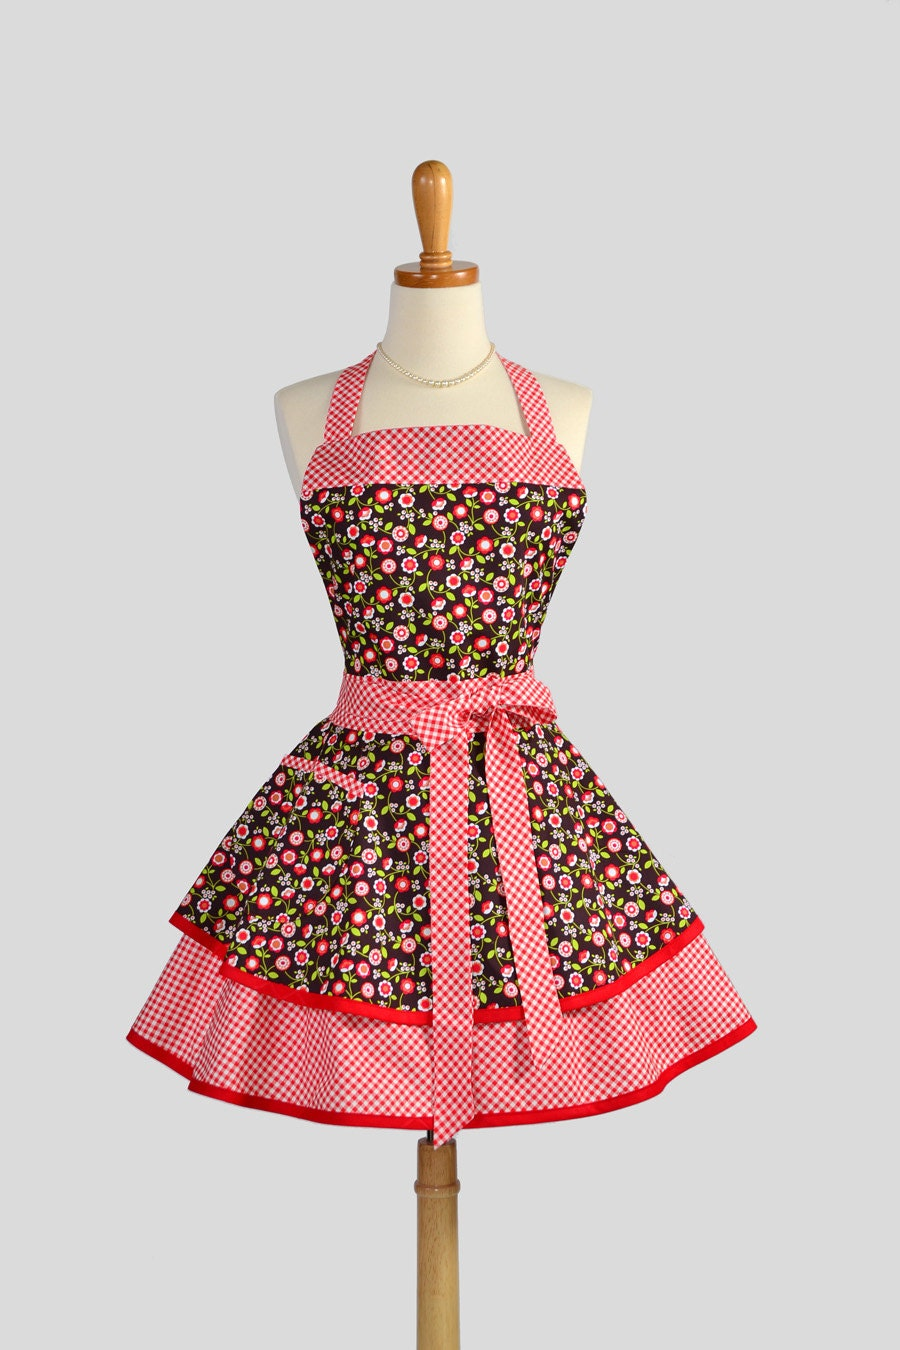 Ruffled Retro Apron - Cute Womens Apron in Country Fall Floral with Flirty Gingham Handmade Full Kitchen Apron